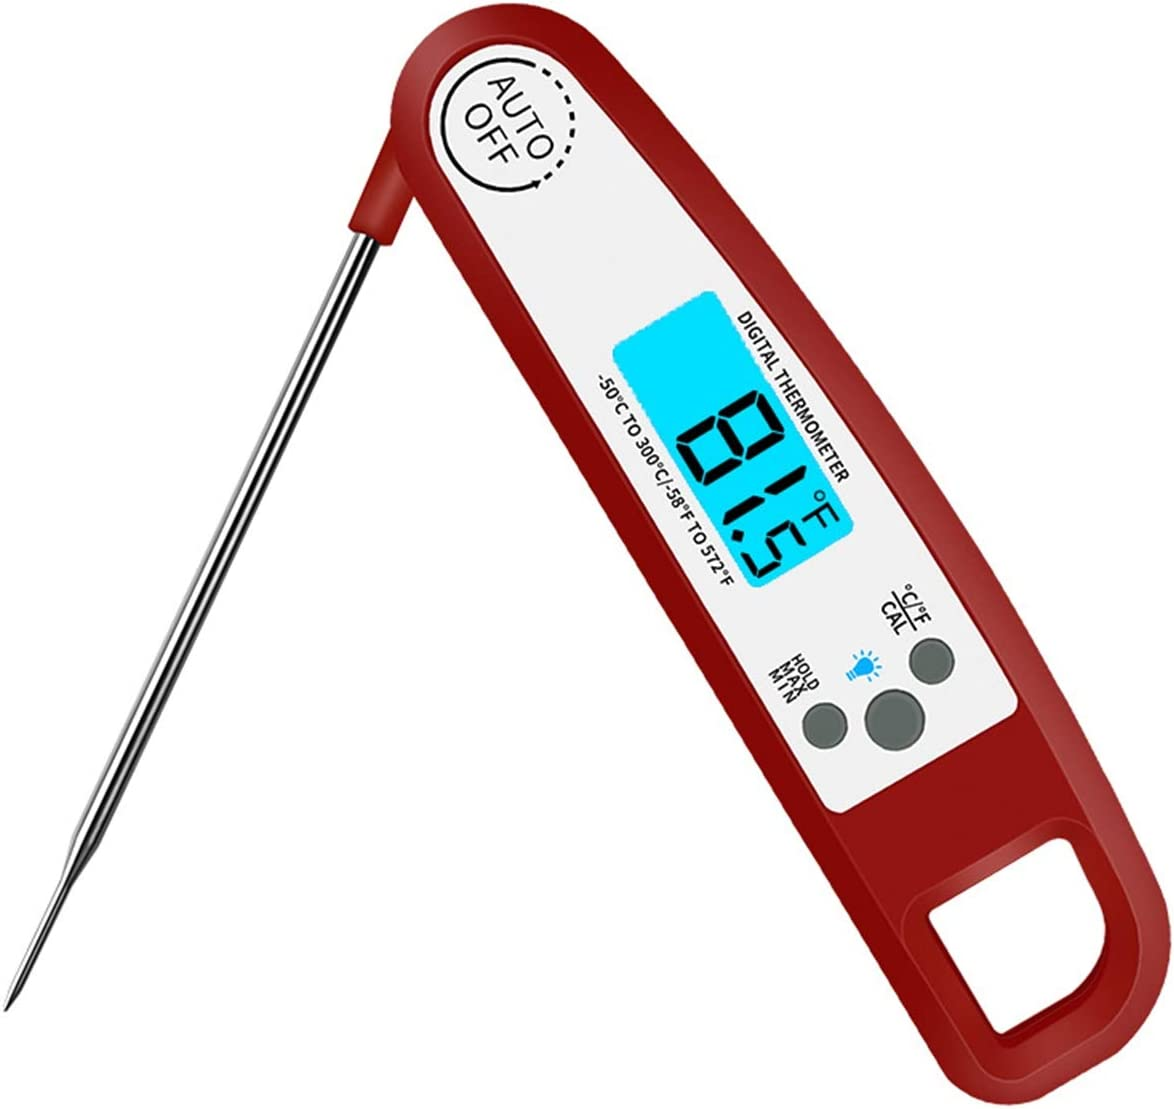 Instant Read Digital Food Thermometer with Bright Backlight LCD Screen, Kitchen Smart Waterproof Cooking Meat Thermometer By Muzmate